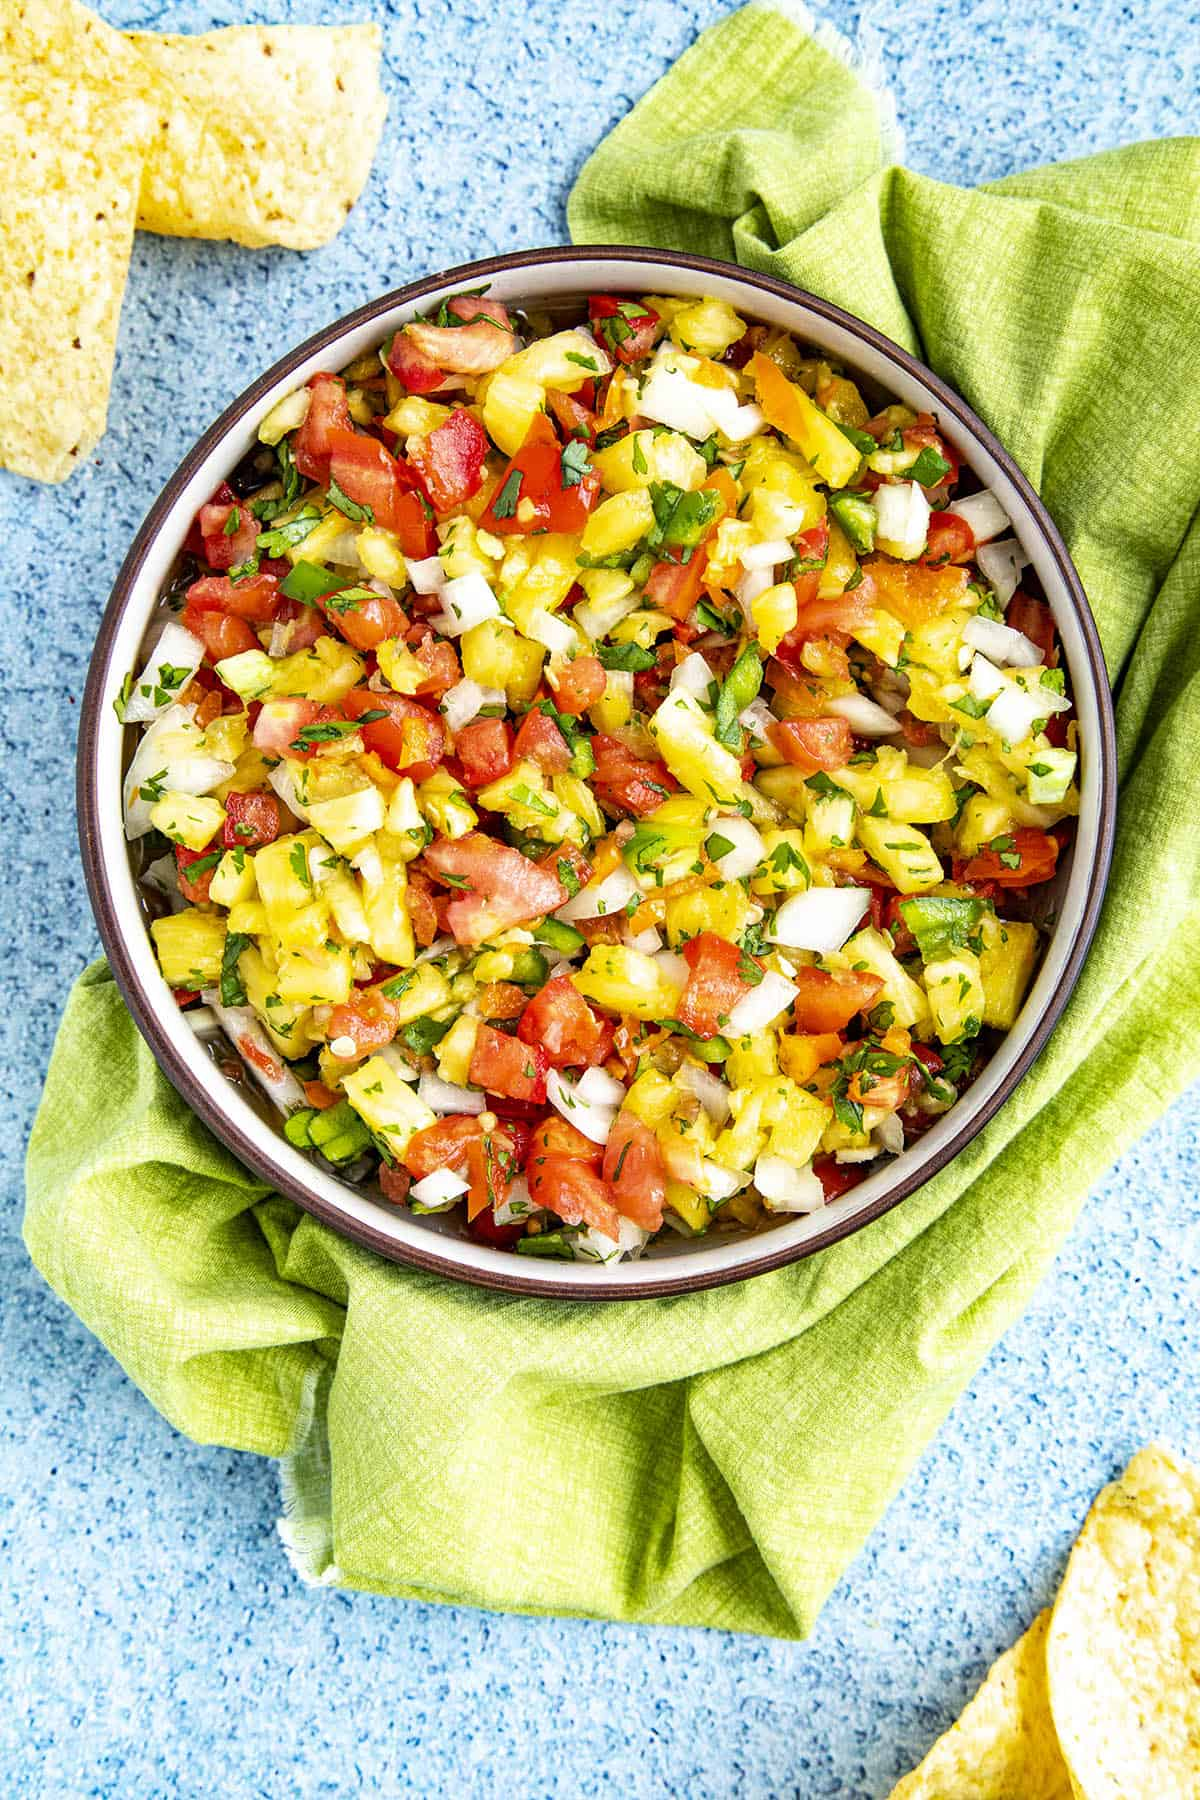 Spicy Pineapple Salsa in a bowl, ready to serve